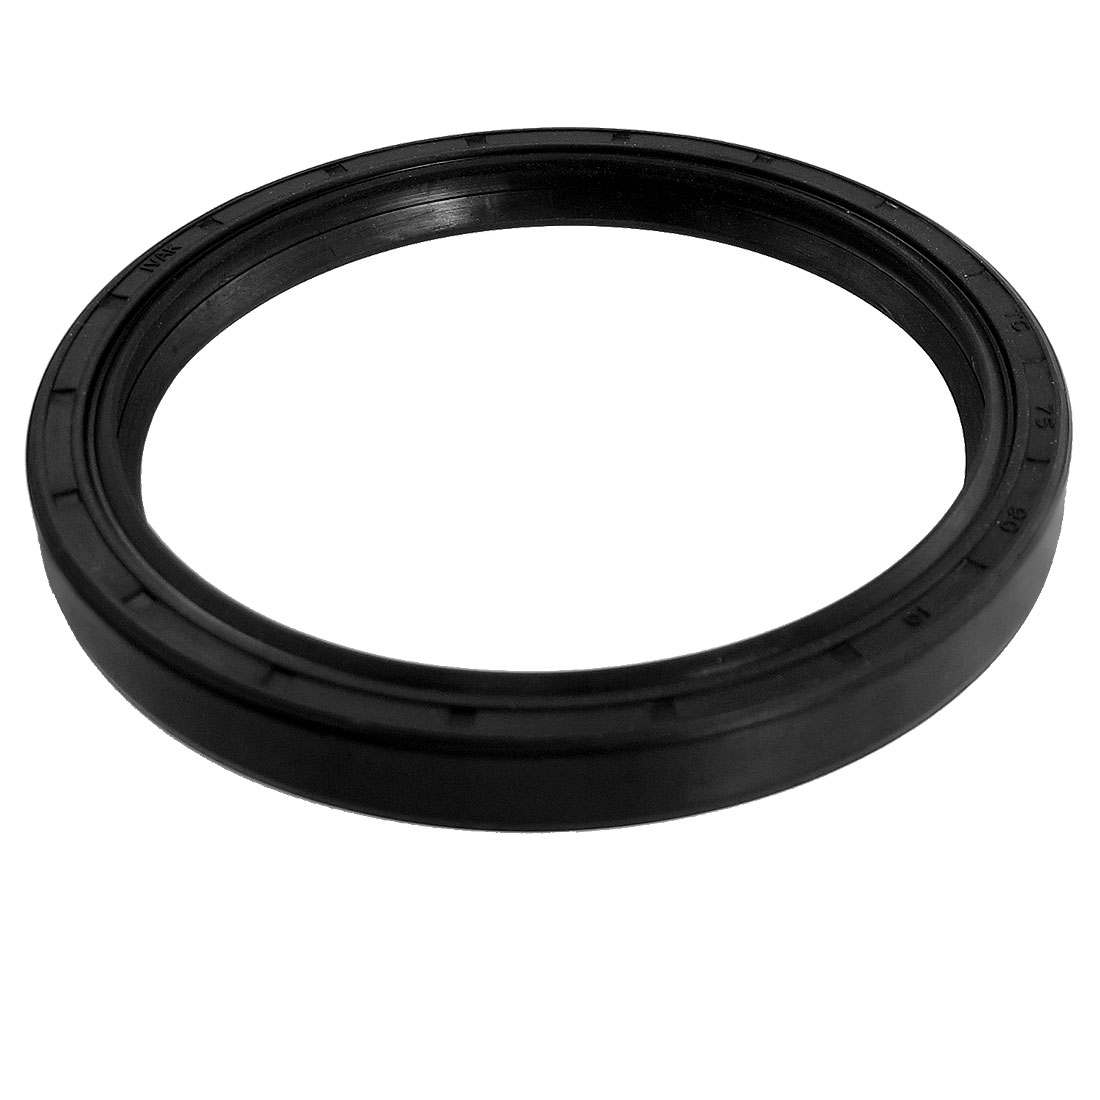 Black Nitrile Rubber Dual Lips Oil Shaft Seal TC 75mm x 90mm x 10mm